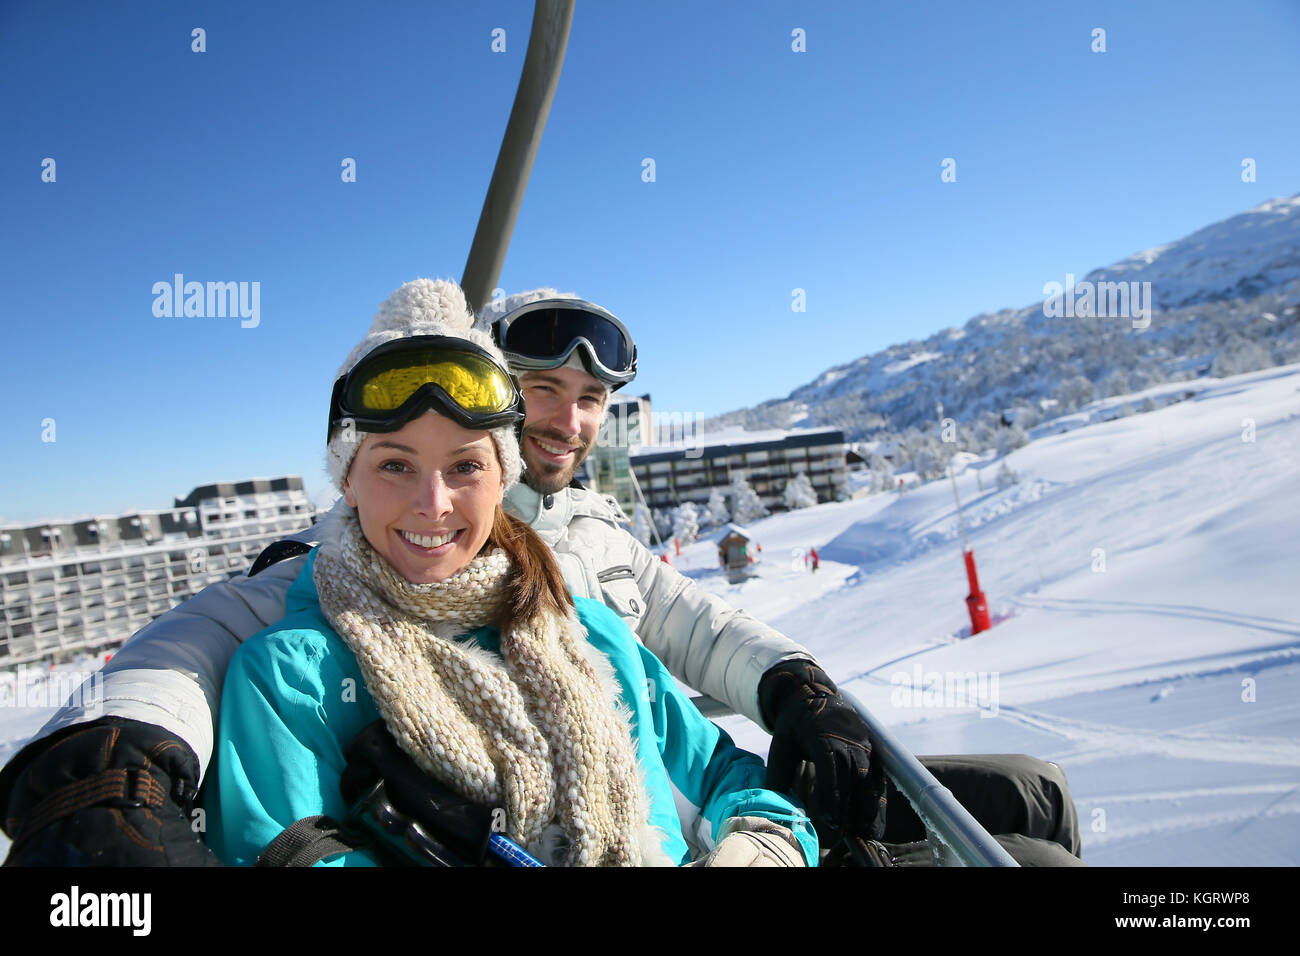 Couple sitting on ski resort chairlift - Stock Image